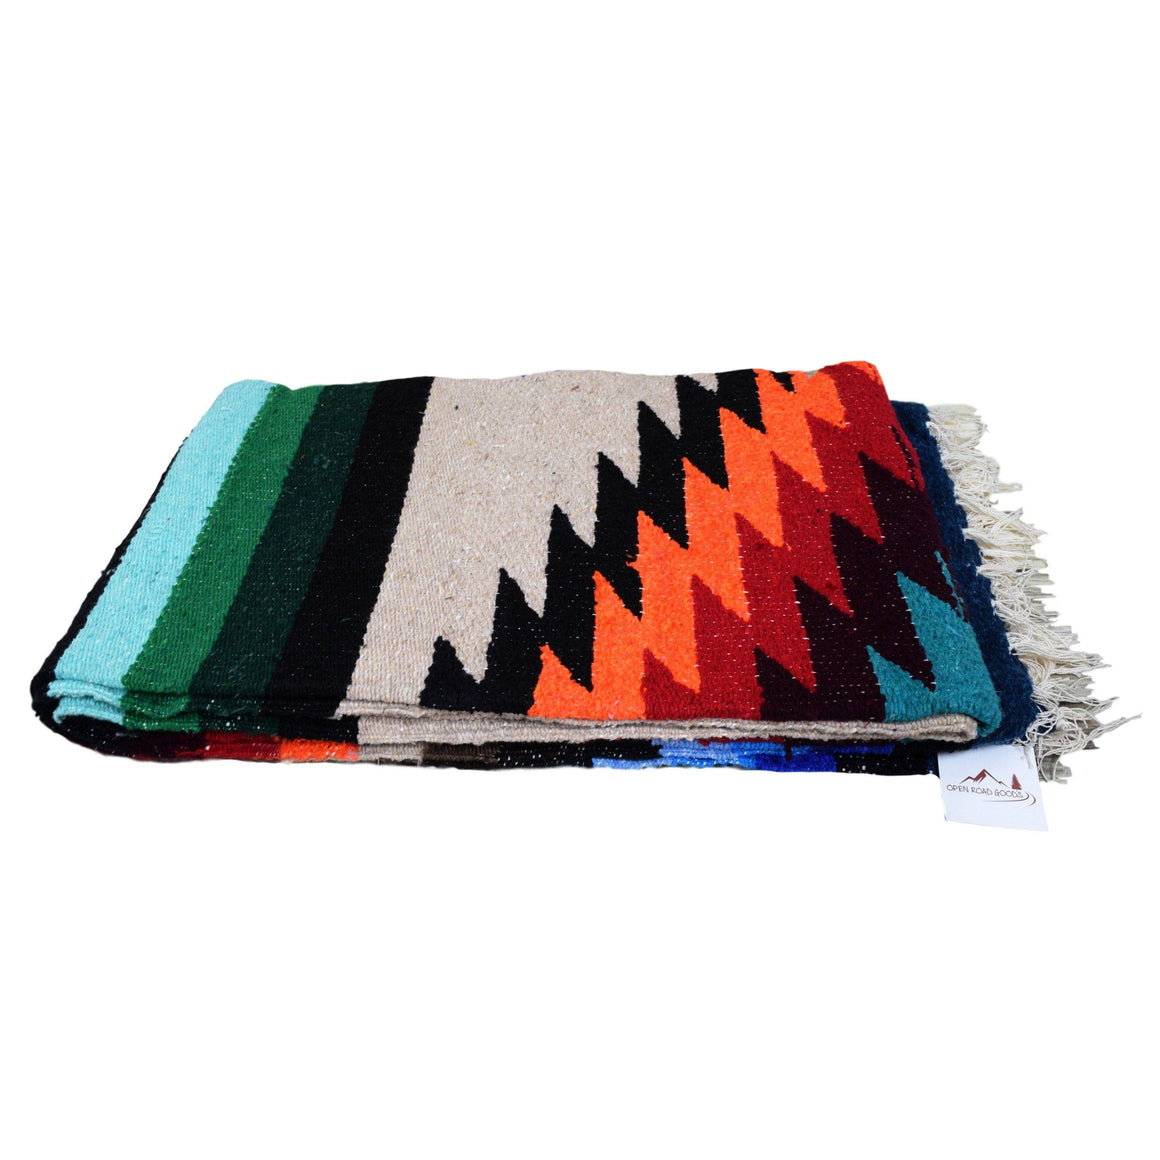 Cozy large West Path Mexican blanket. Photo by Paisley Ann Photography